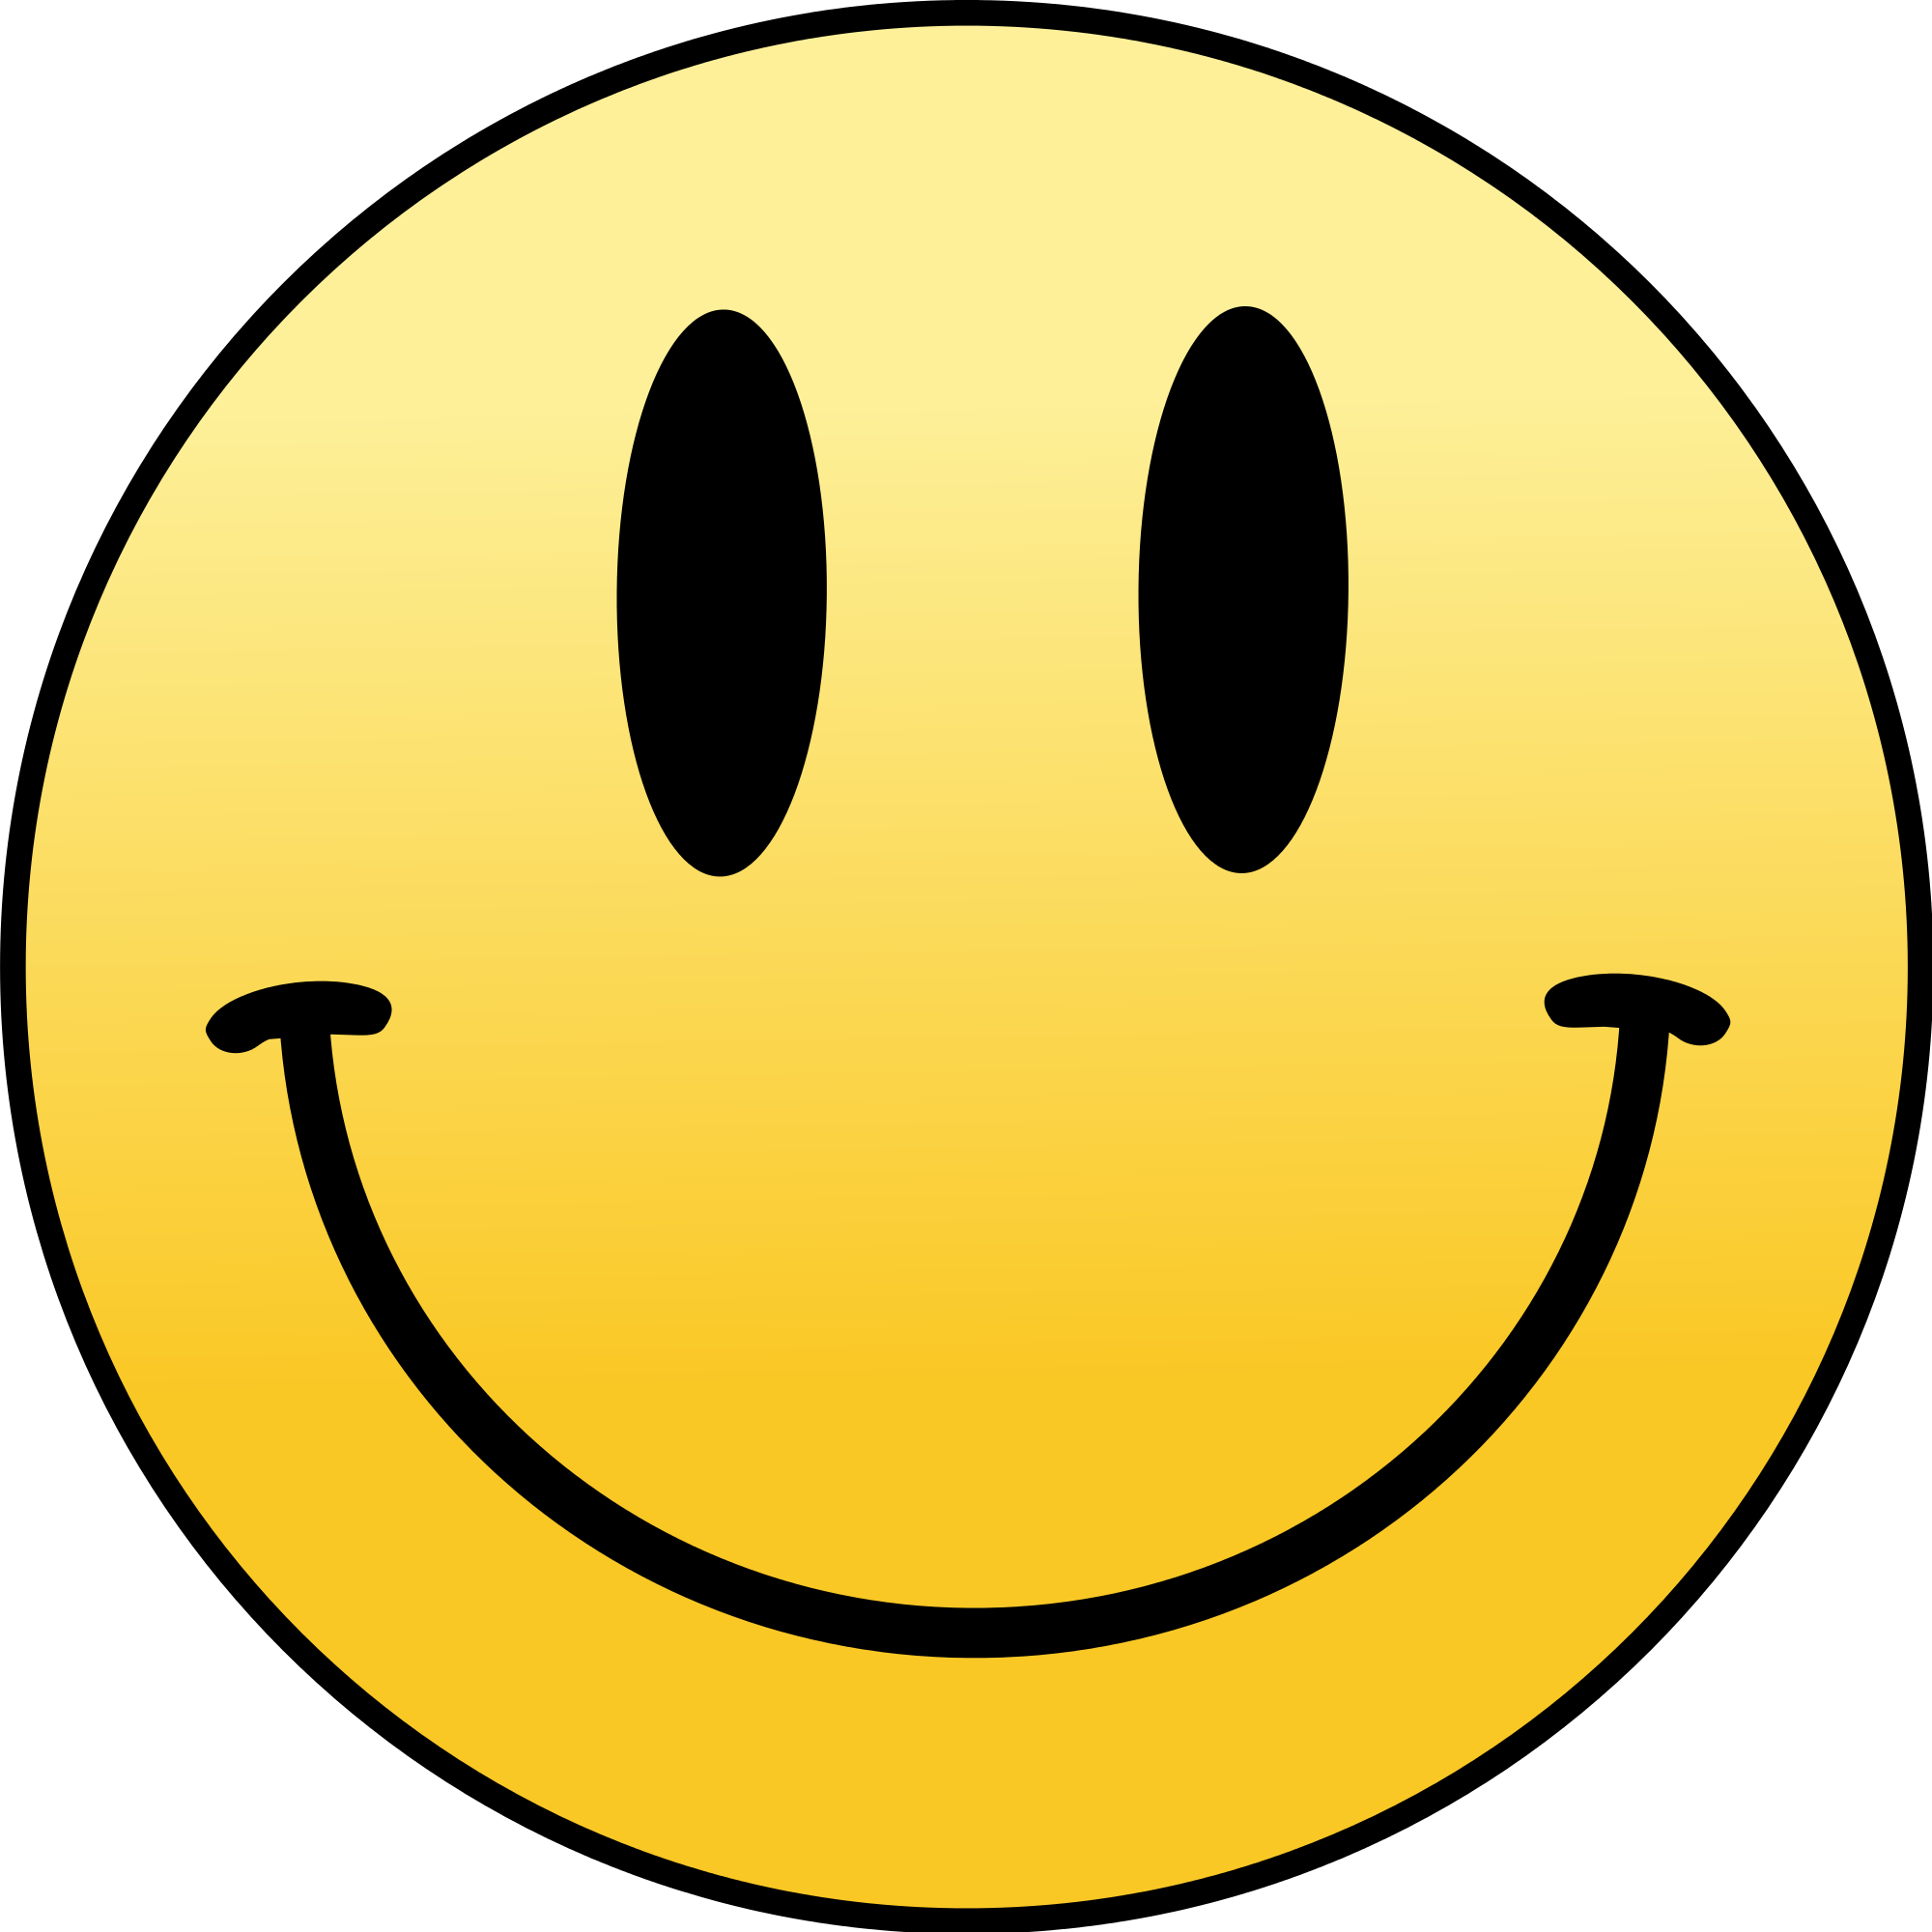 Happy smiley png. Images free download